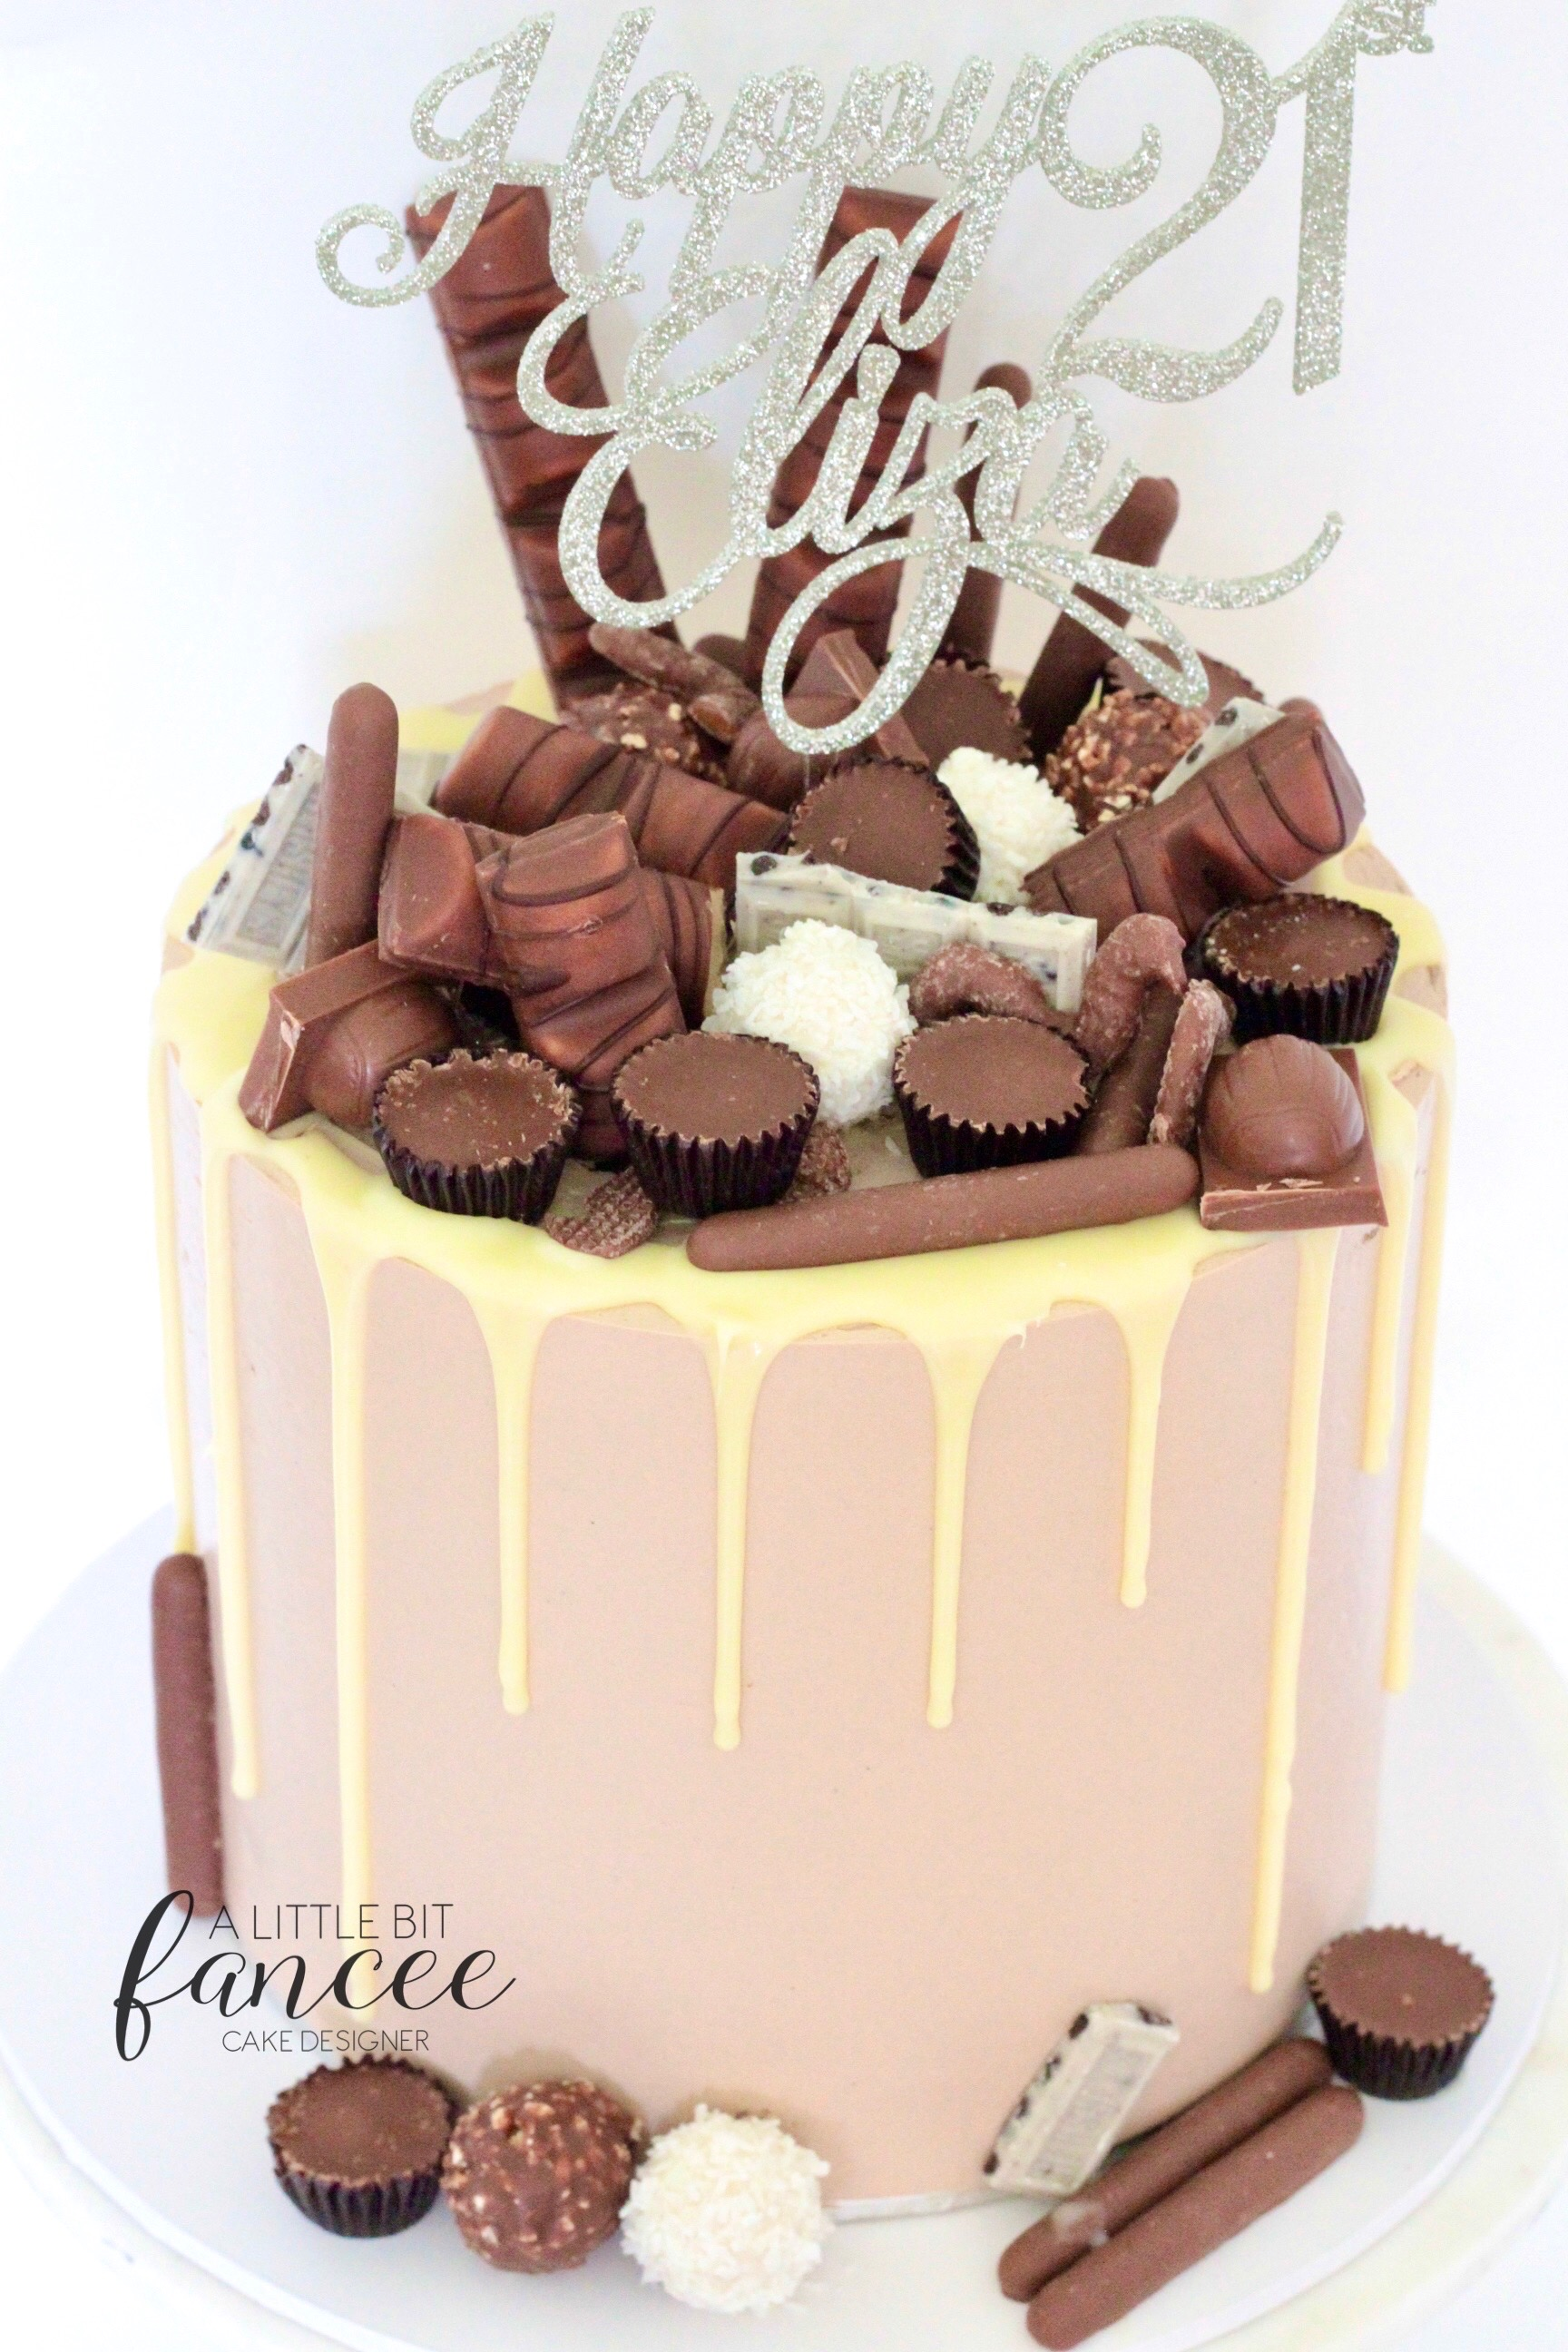 Chocolate Lovers Dream Cake